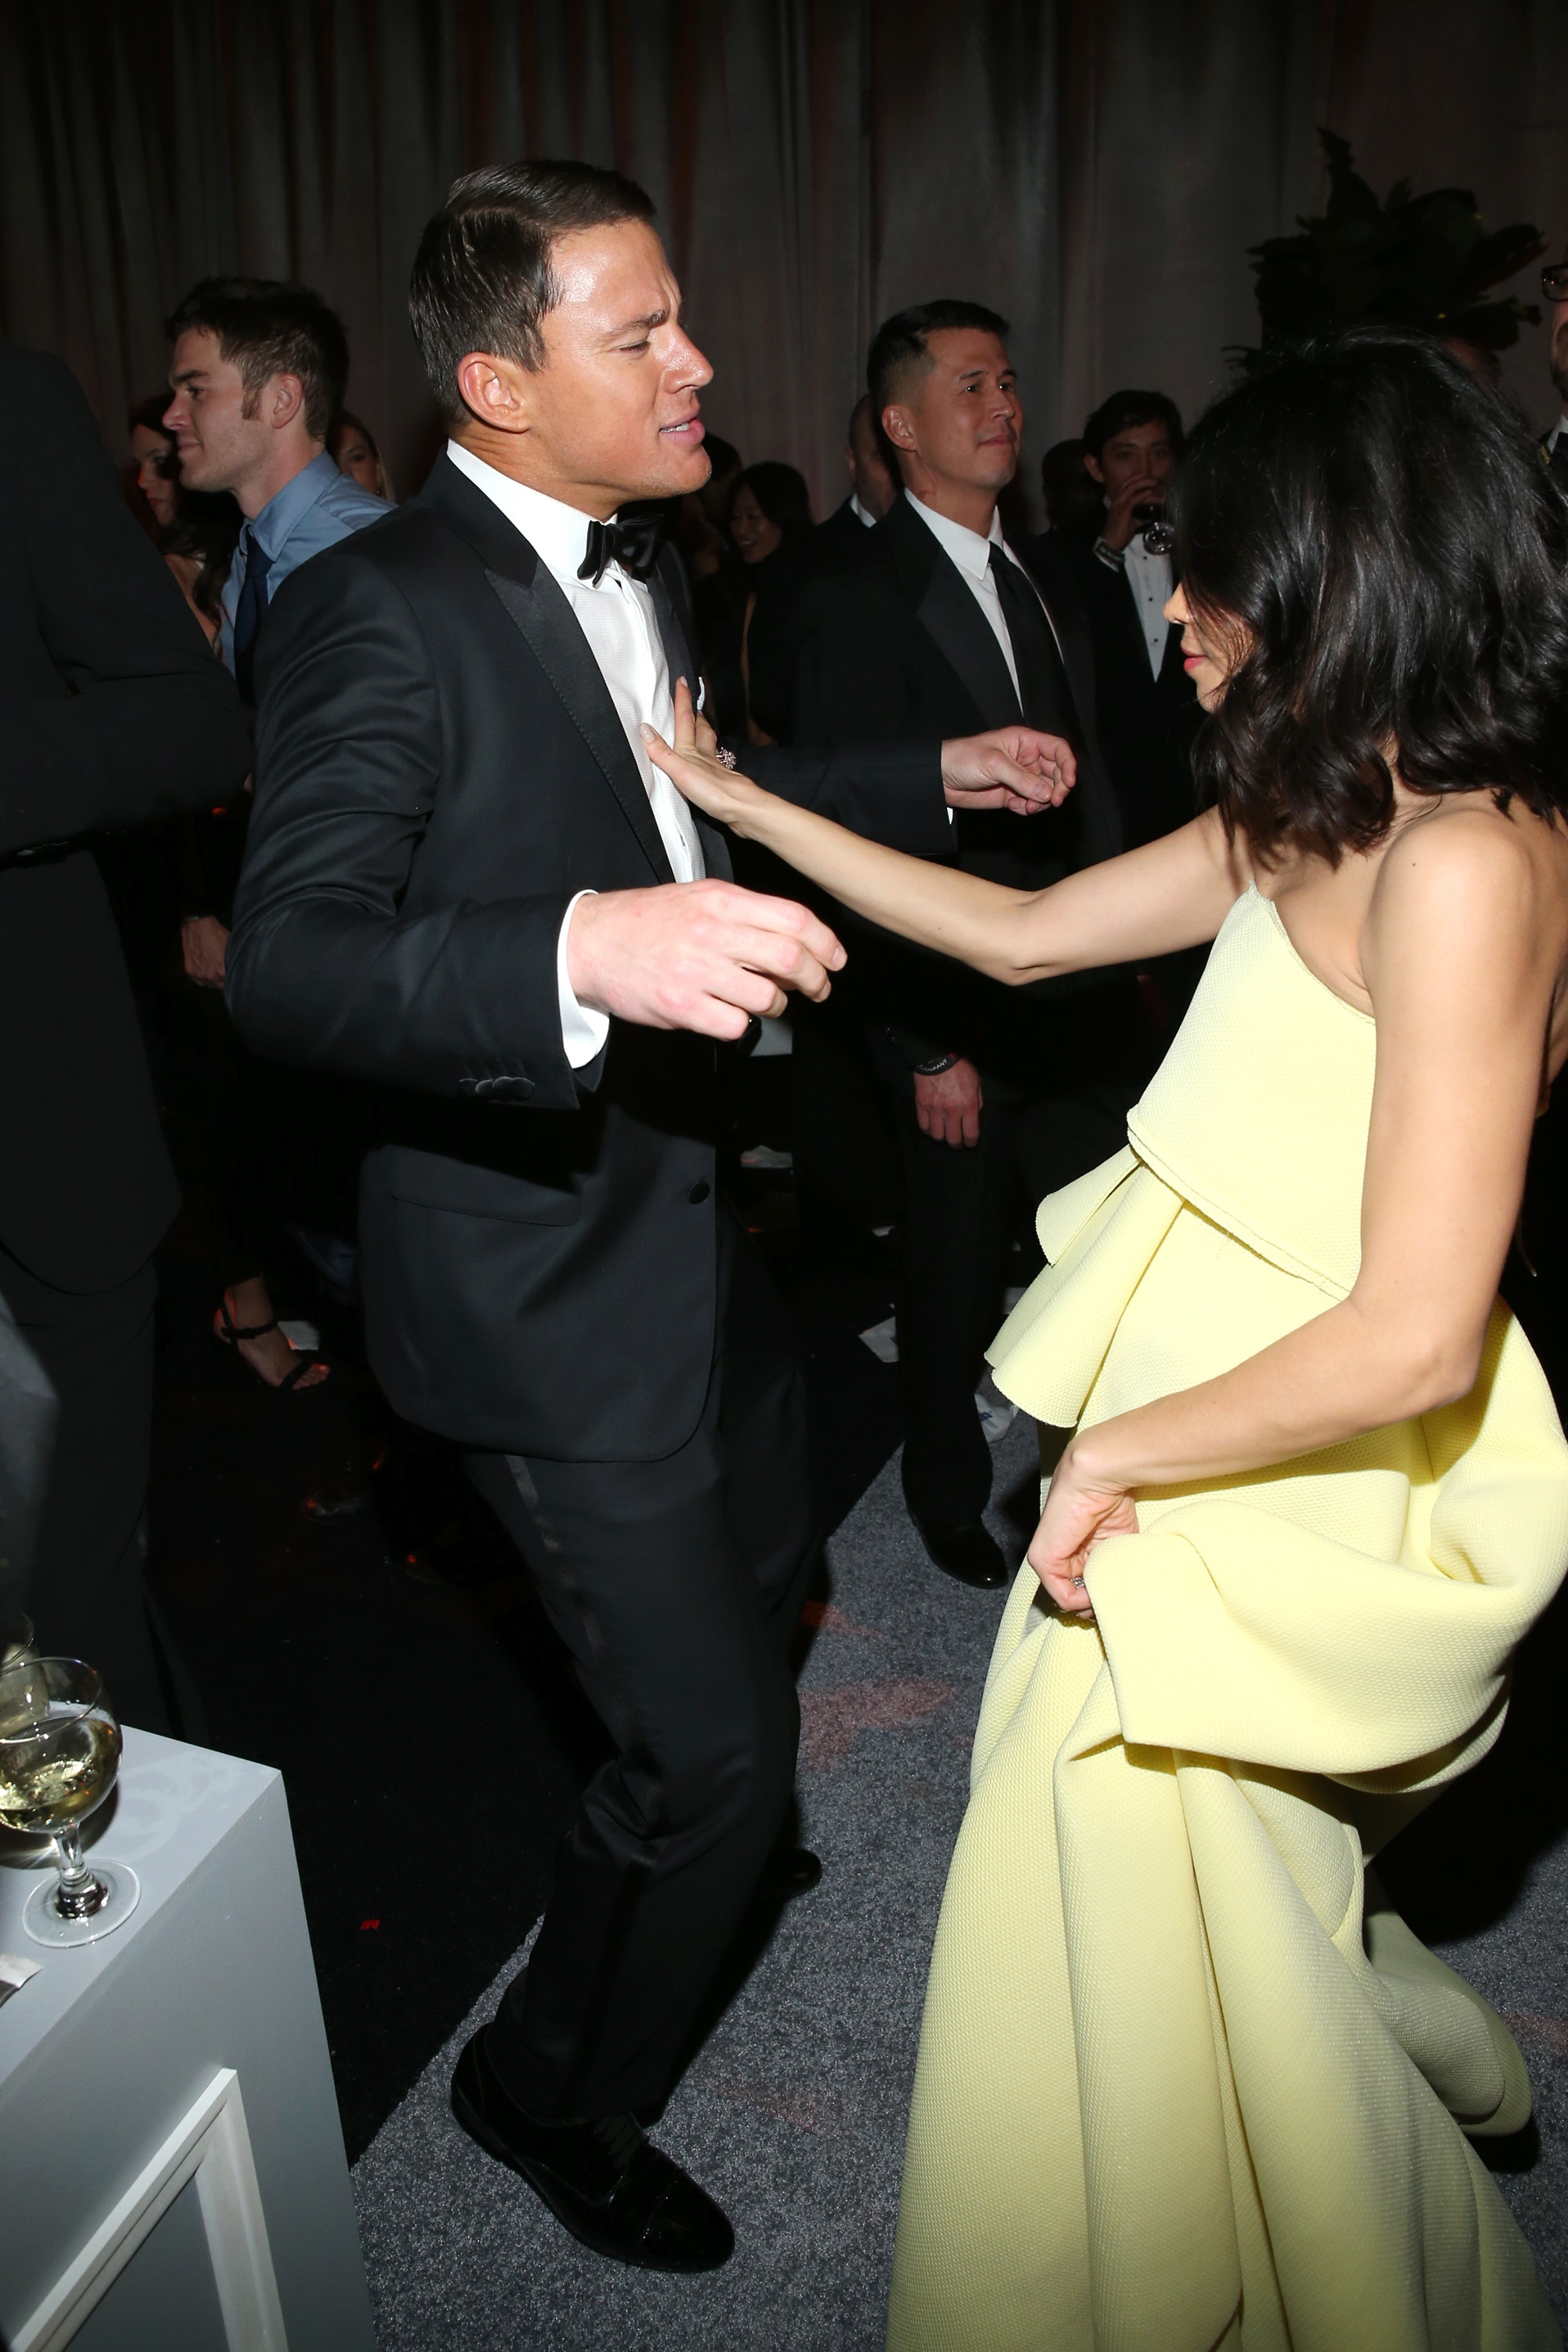 Channing Tatum and wife Jenna Dewan at the 2015 Golden Globes After Party at The Beverly Hilton Hotel on Jan. 11, 2015 in Beverly Hills, Calif.